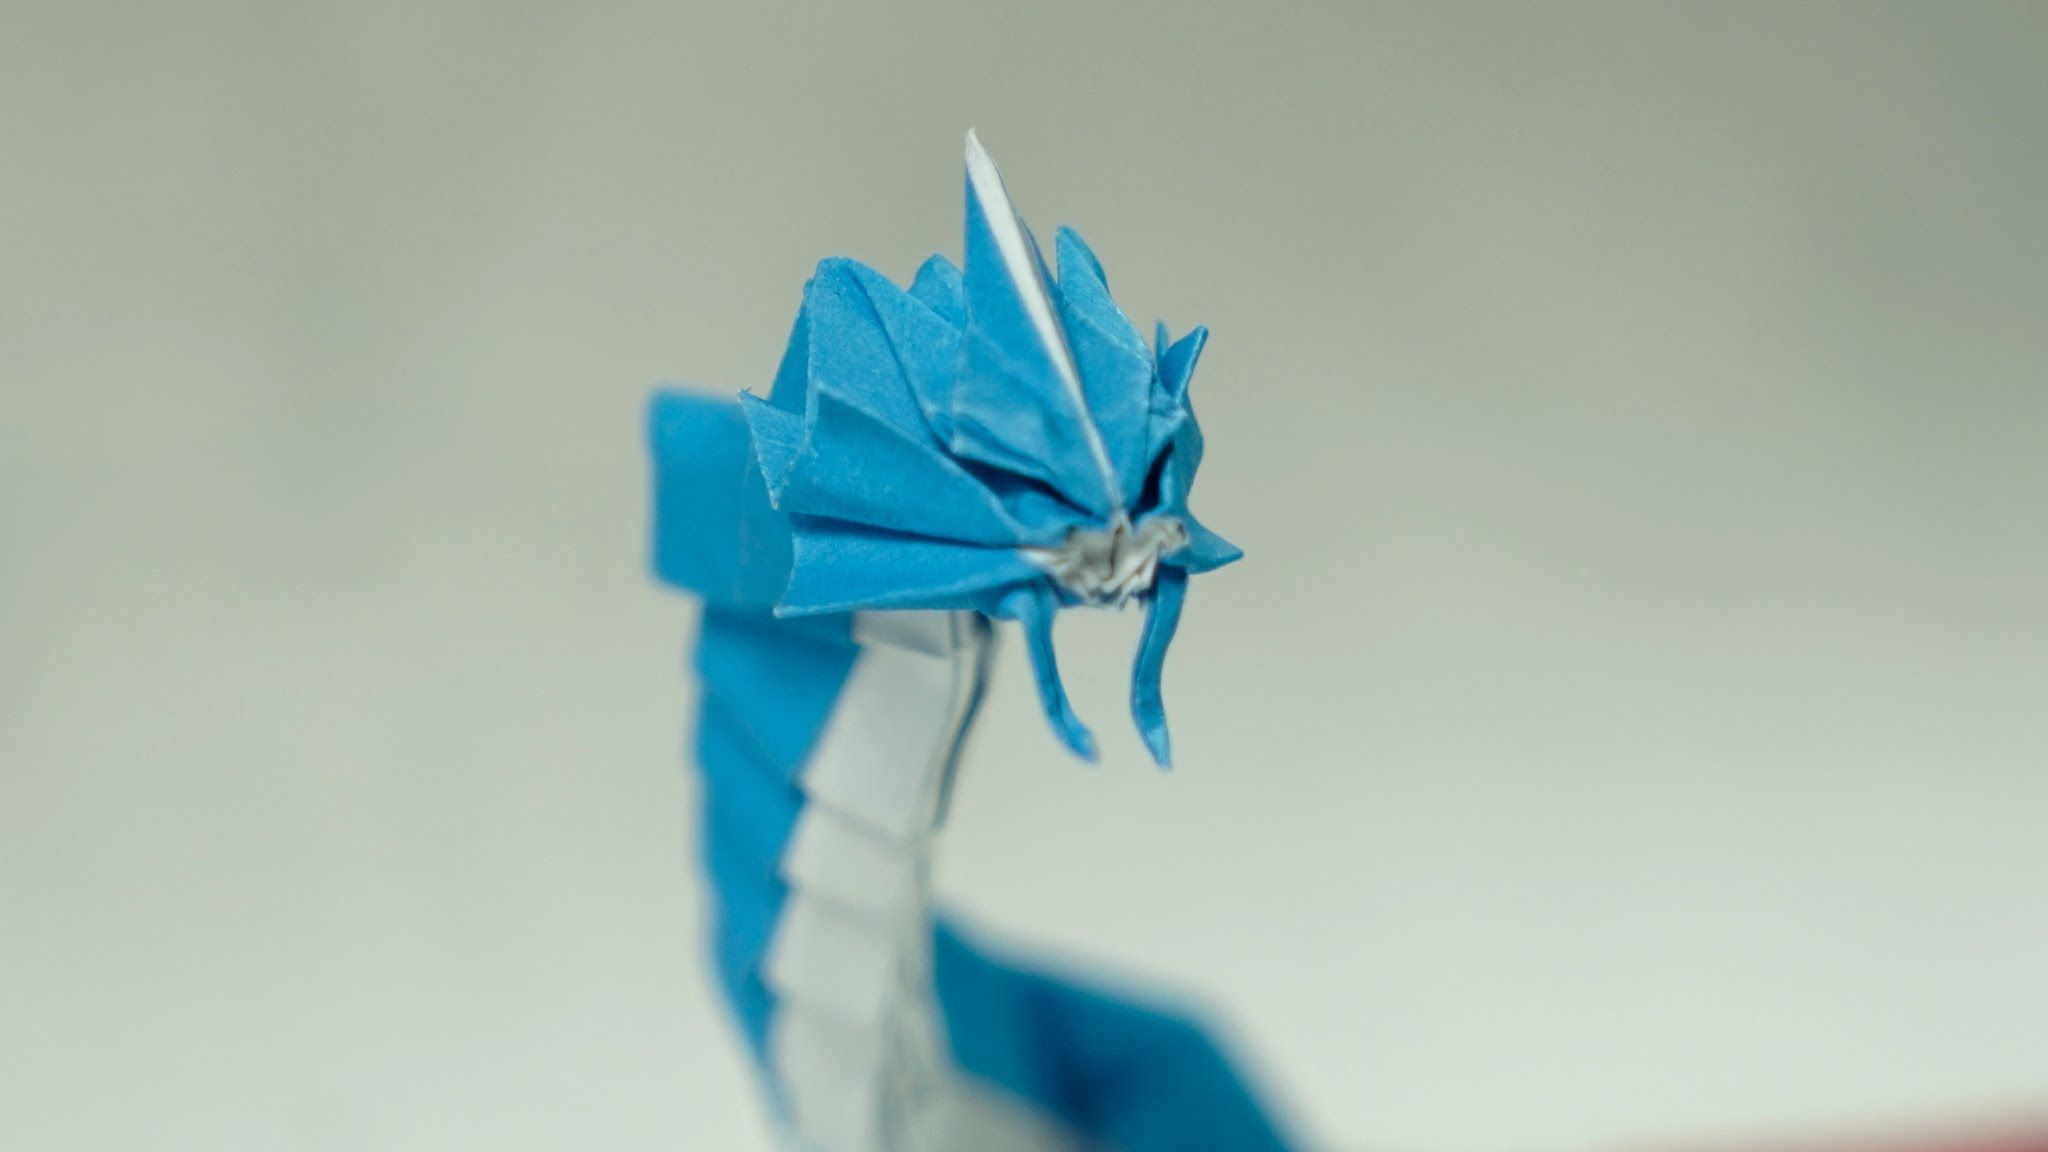 Pokemon go origami gyarados tutorial henry phm i want to pokemon go origami gyarados tutorial henry phm jeuxipadfo Gallery